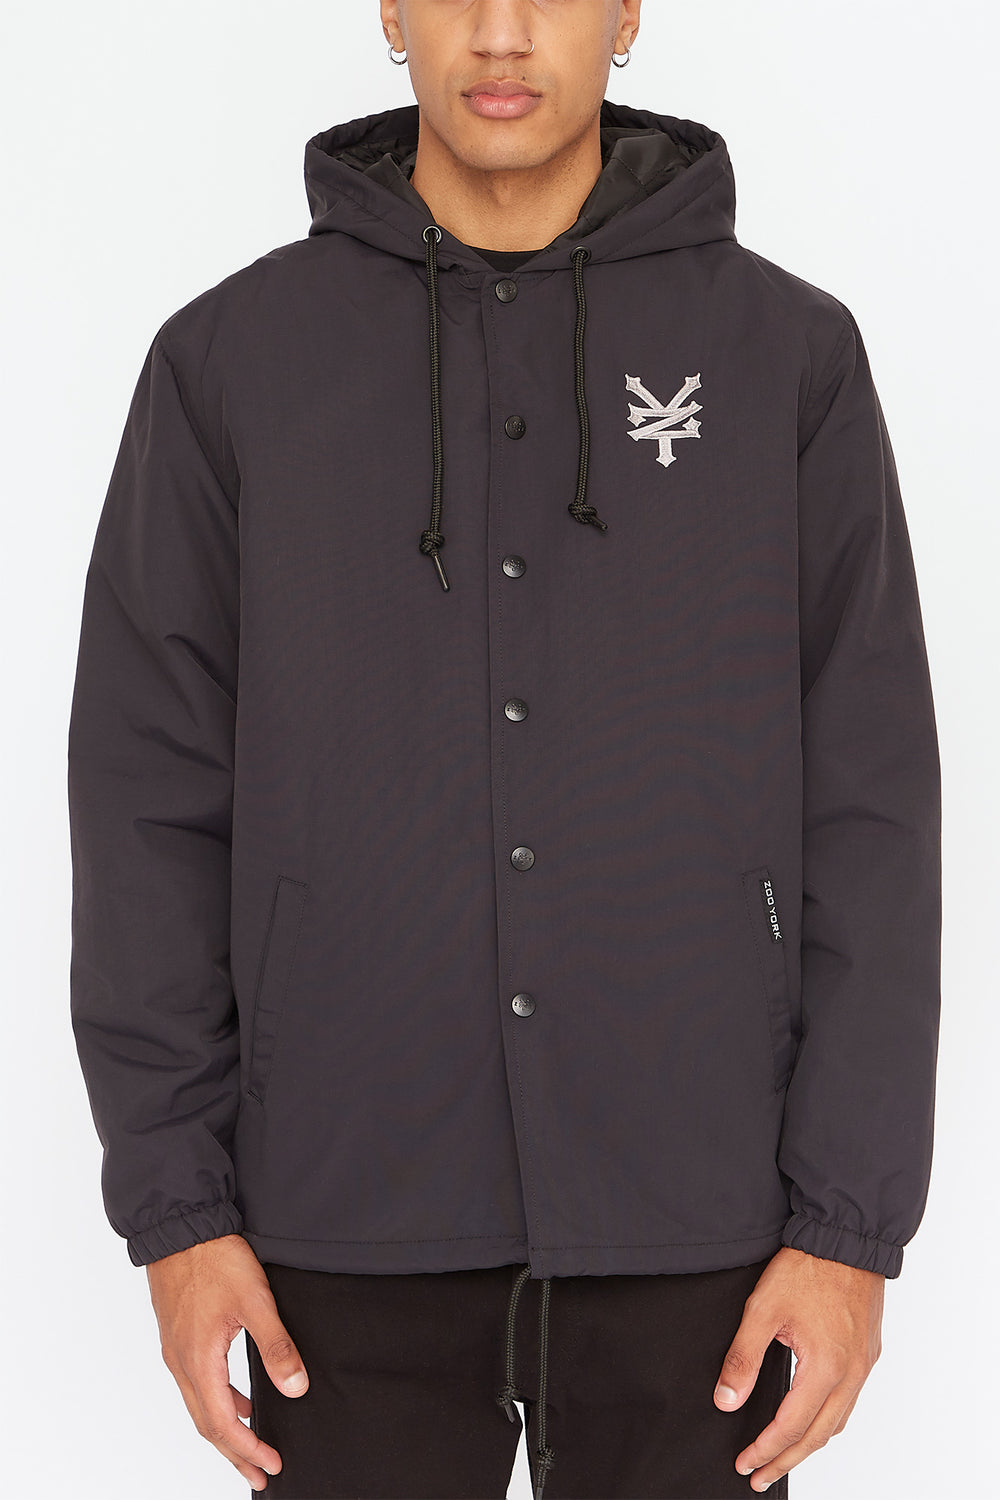 Zoo York Mens Hooded Coach Jacket Black